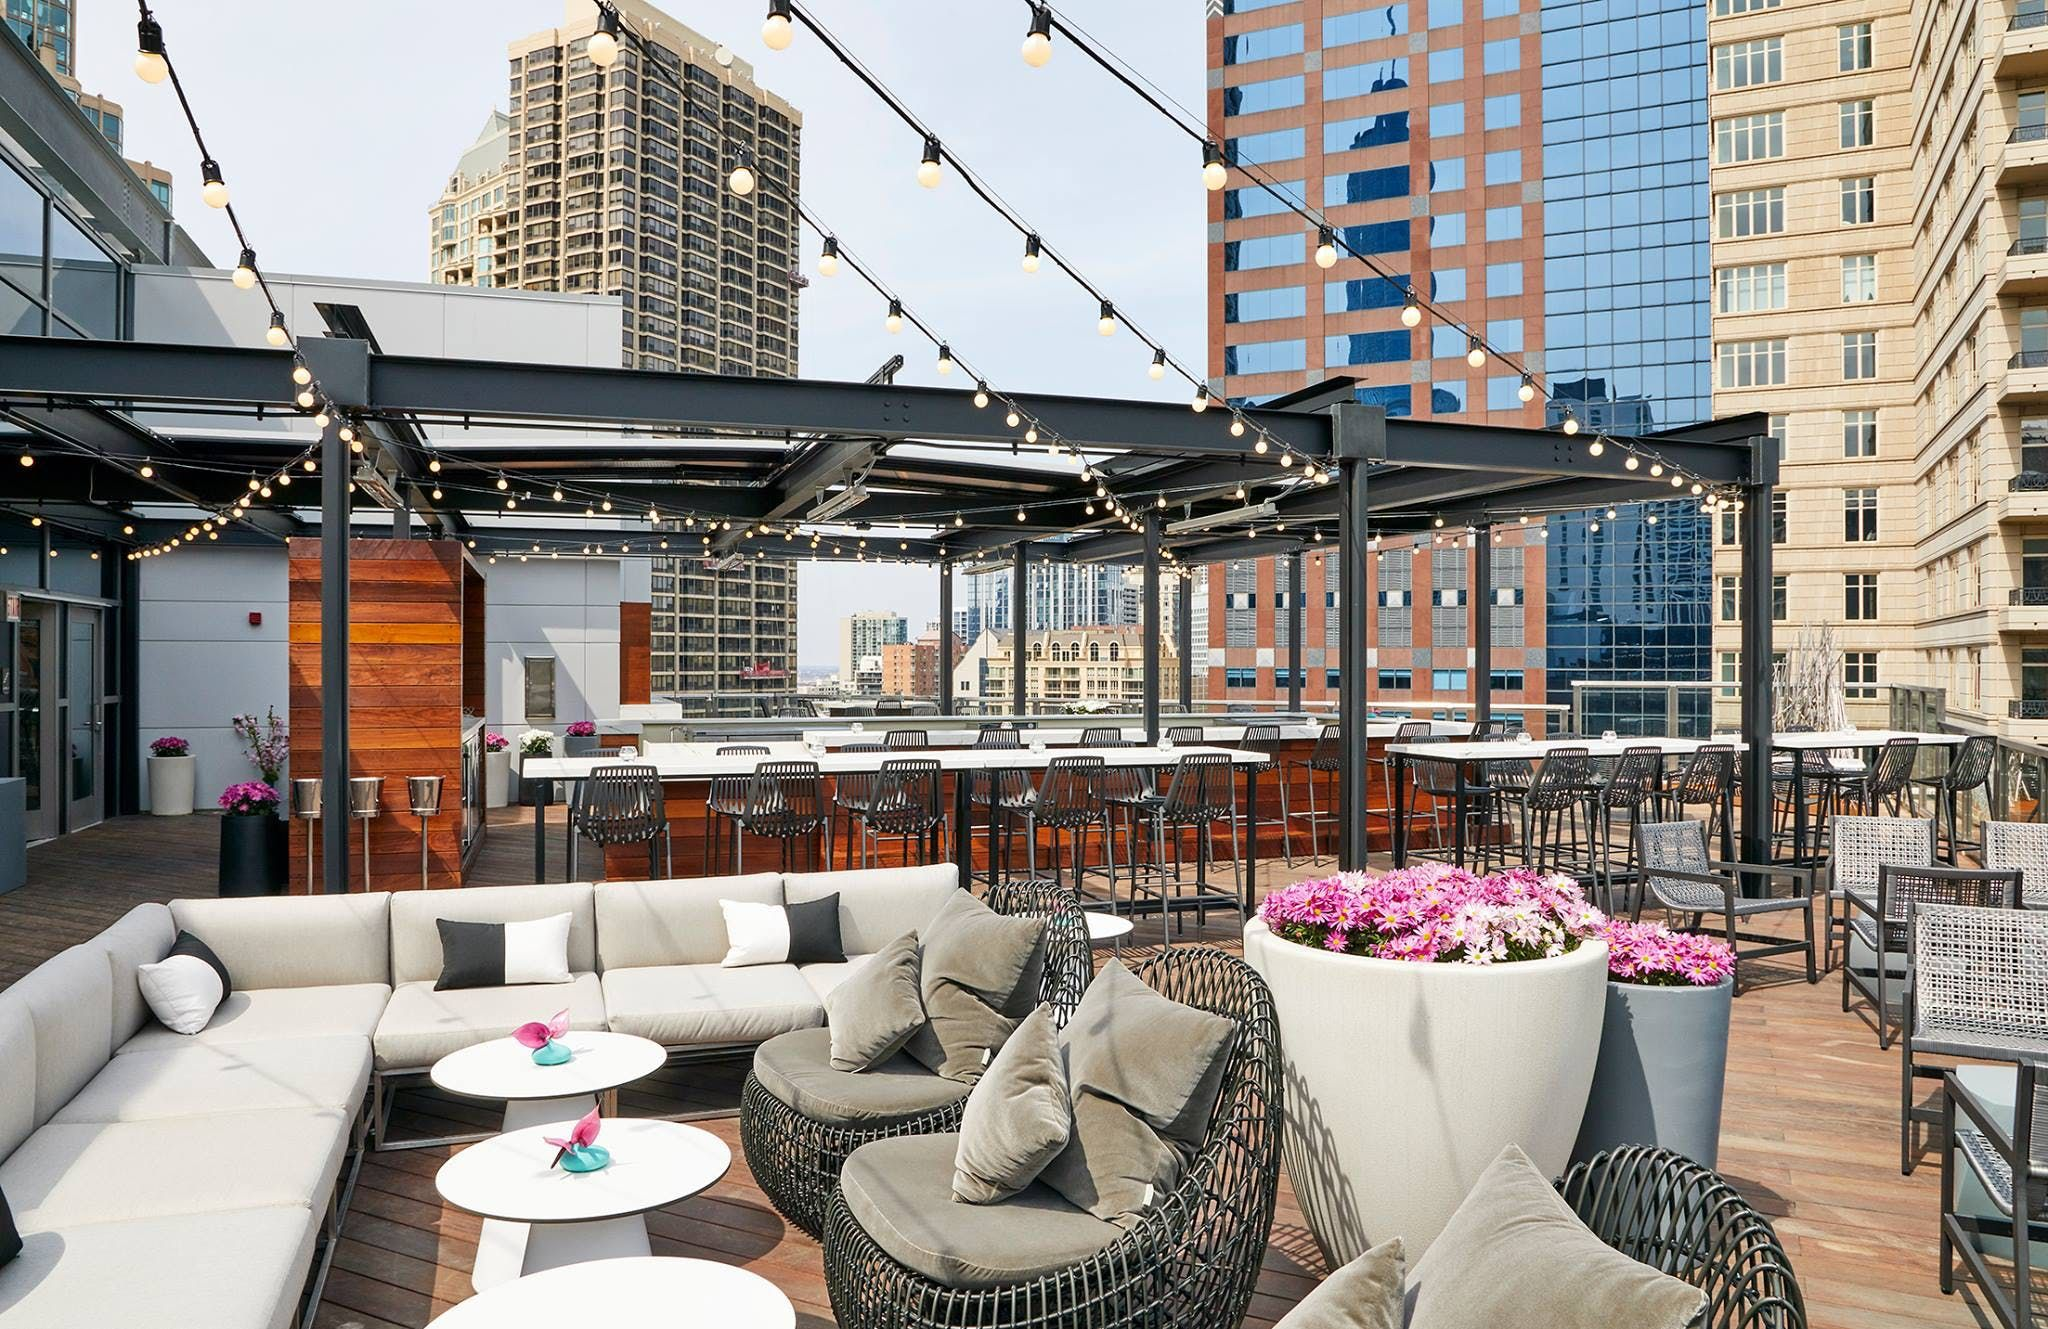 Congratulations! You made it to summer. First order of business: Spend as much time outside as possible?preferably while sipping an icy cocktail and taking in a killer skyline view. We found 15 Chicago rooftops for doing just that. RELATED: 30 Things to Do This Summer in Chicago